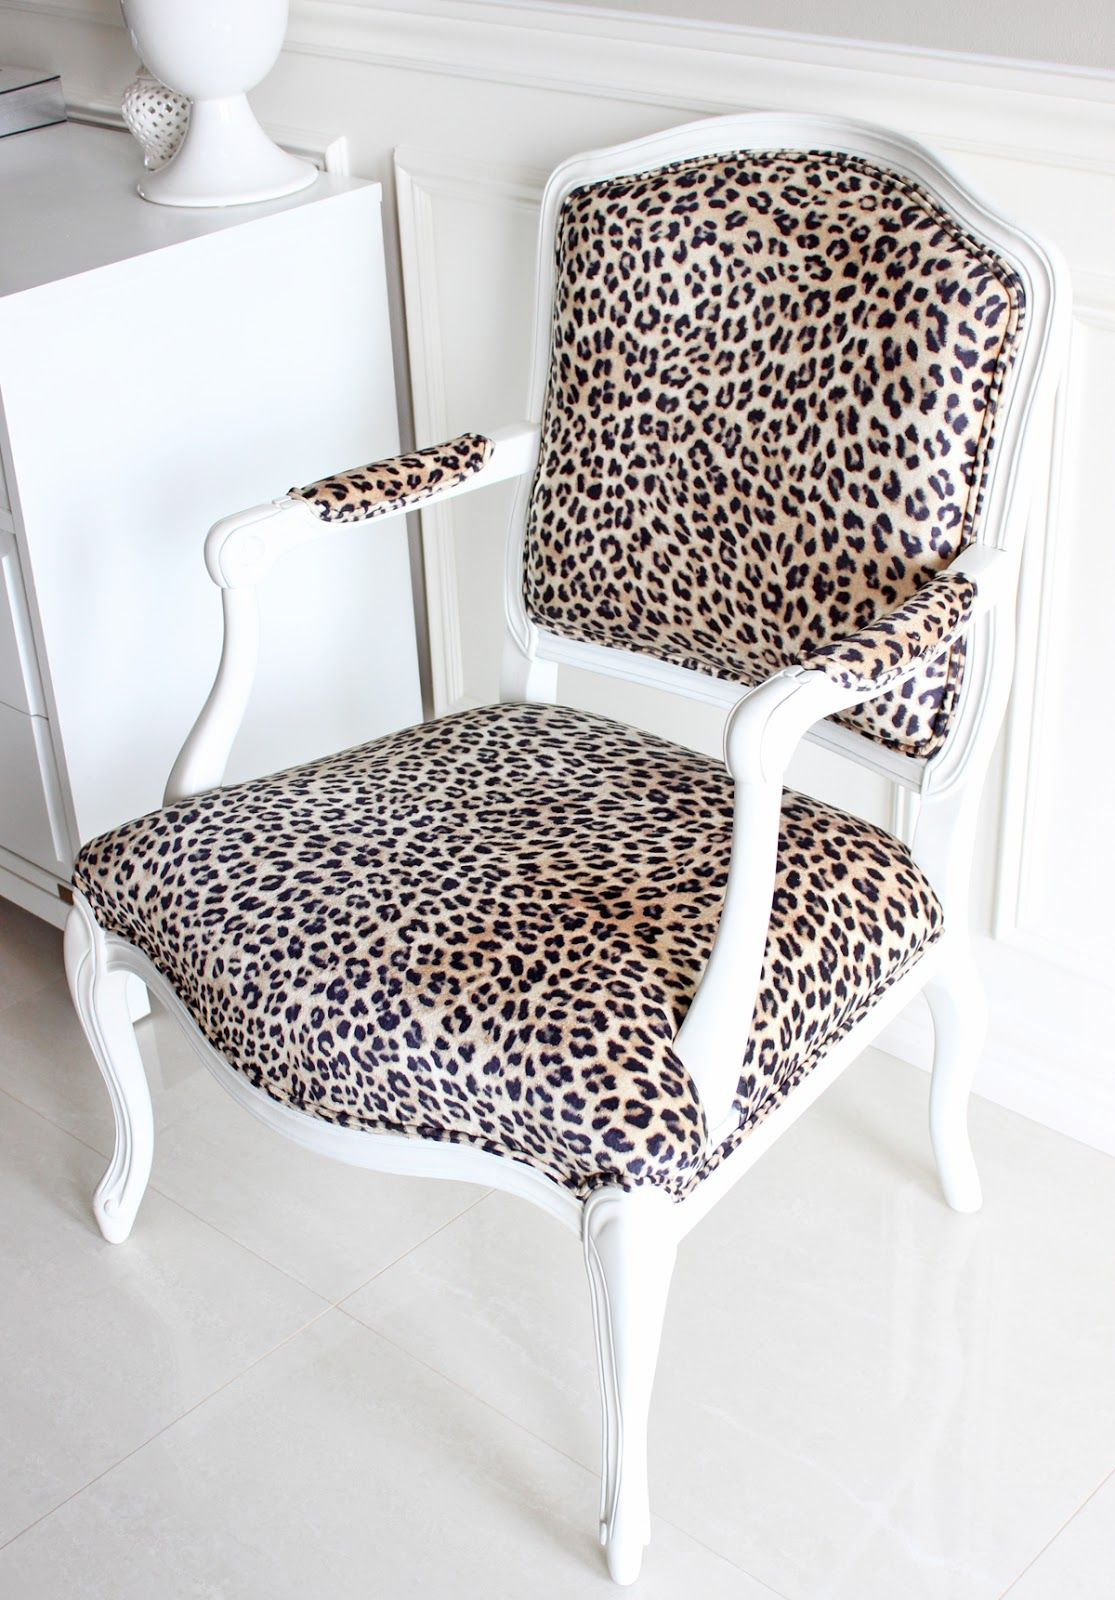 Leopard Chairs Living Room French Louis Xv Sofa They Are Not In The Living Room To Stay